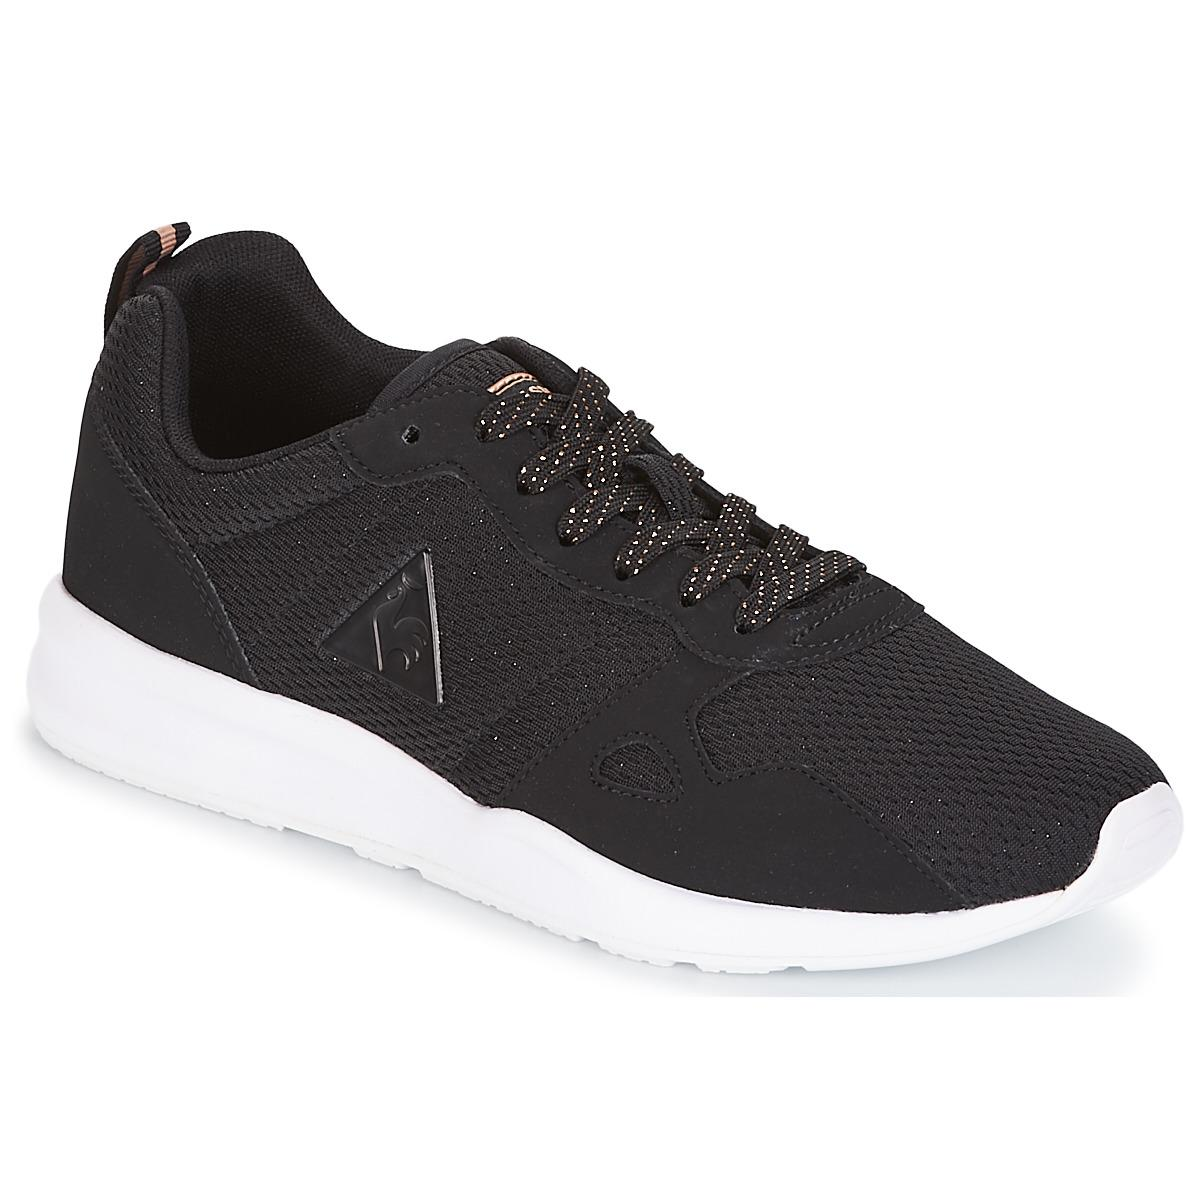 new concept 24f39 906af le-coq-sportif-black-Lcs-R600-W-Metallic-Meshs-Nubuck-Womens-Shoes -trainers-In-Black.jpeg